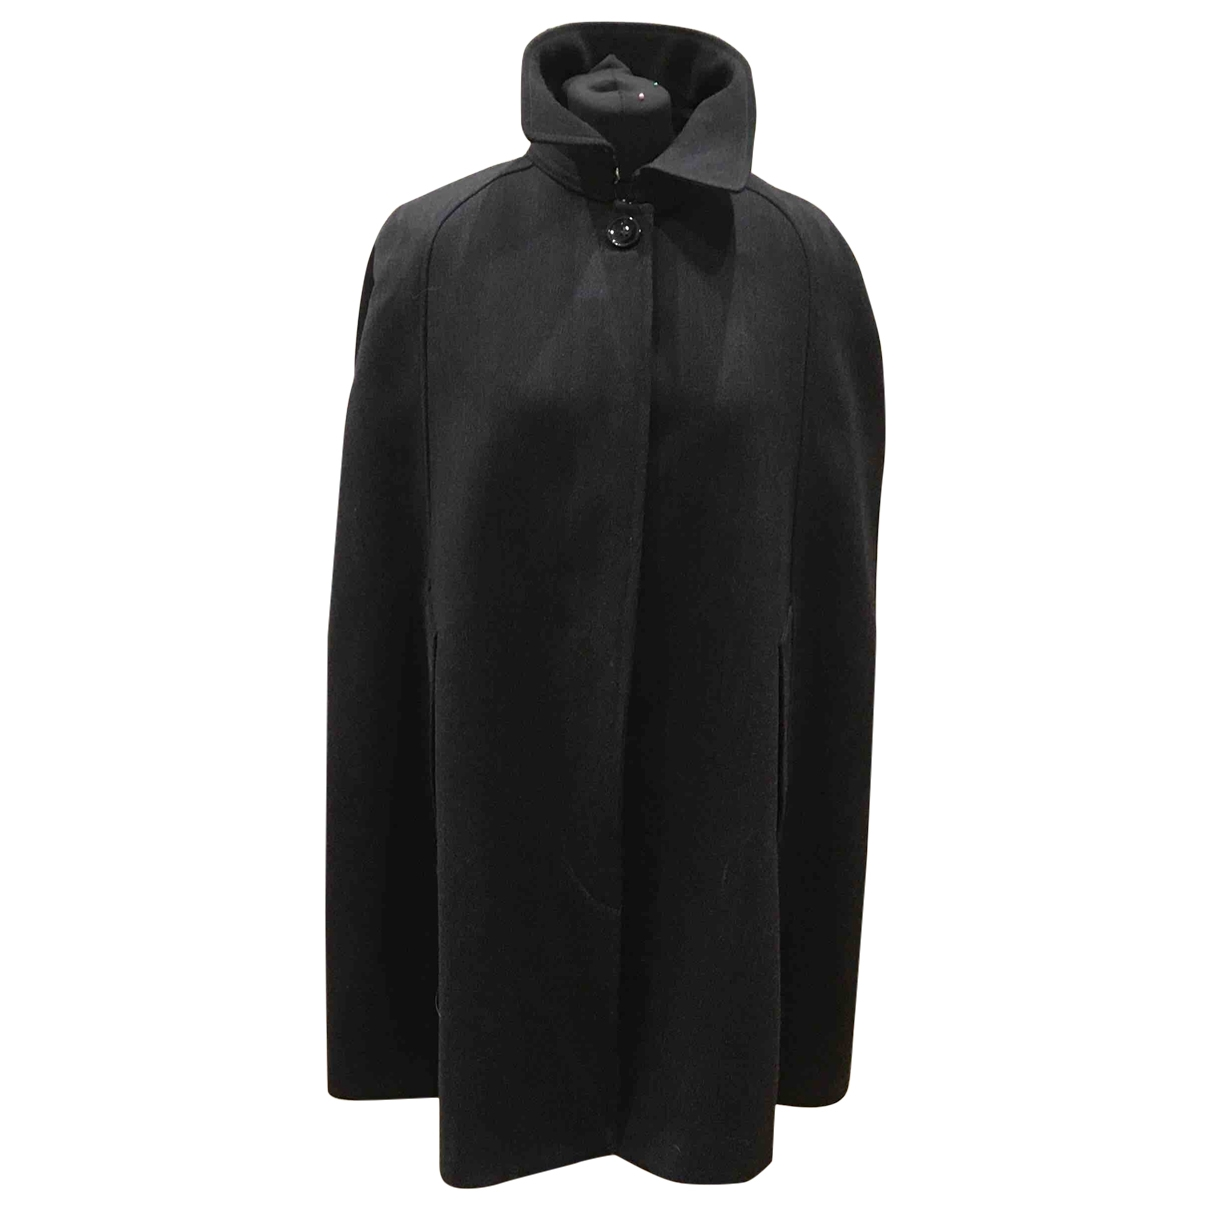 D&g \N Anthracite Wool coat for Women 42 IT